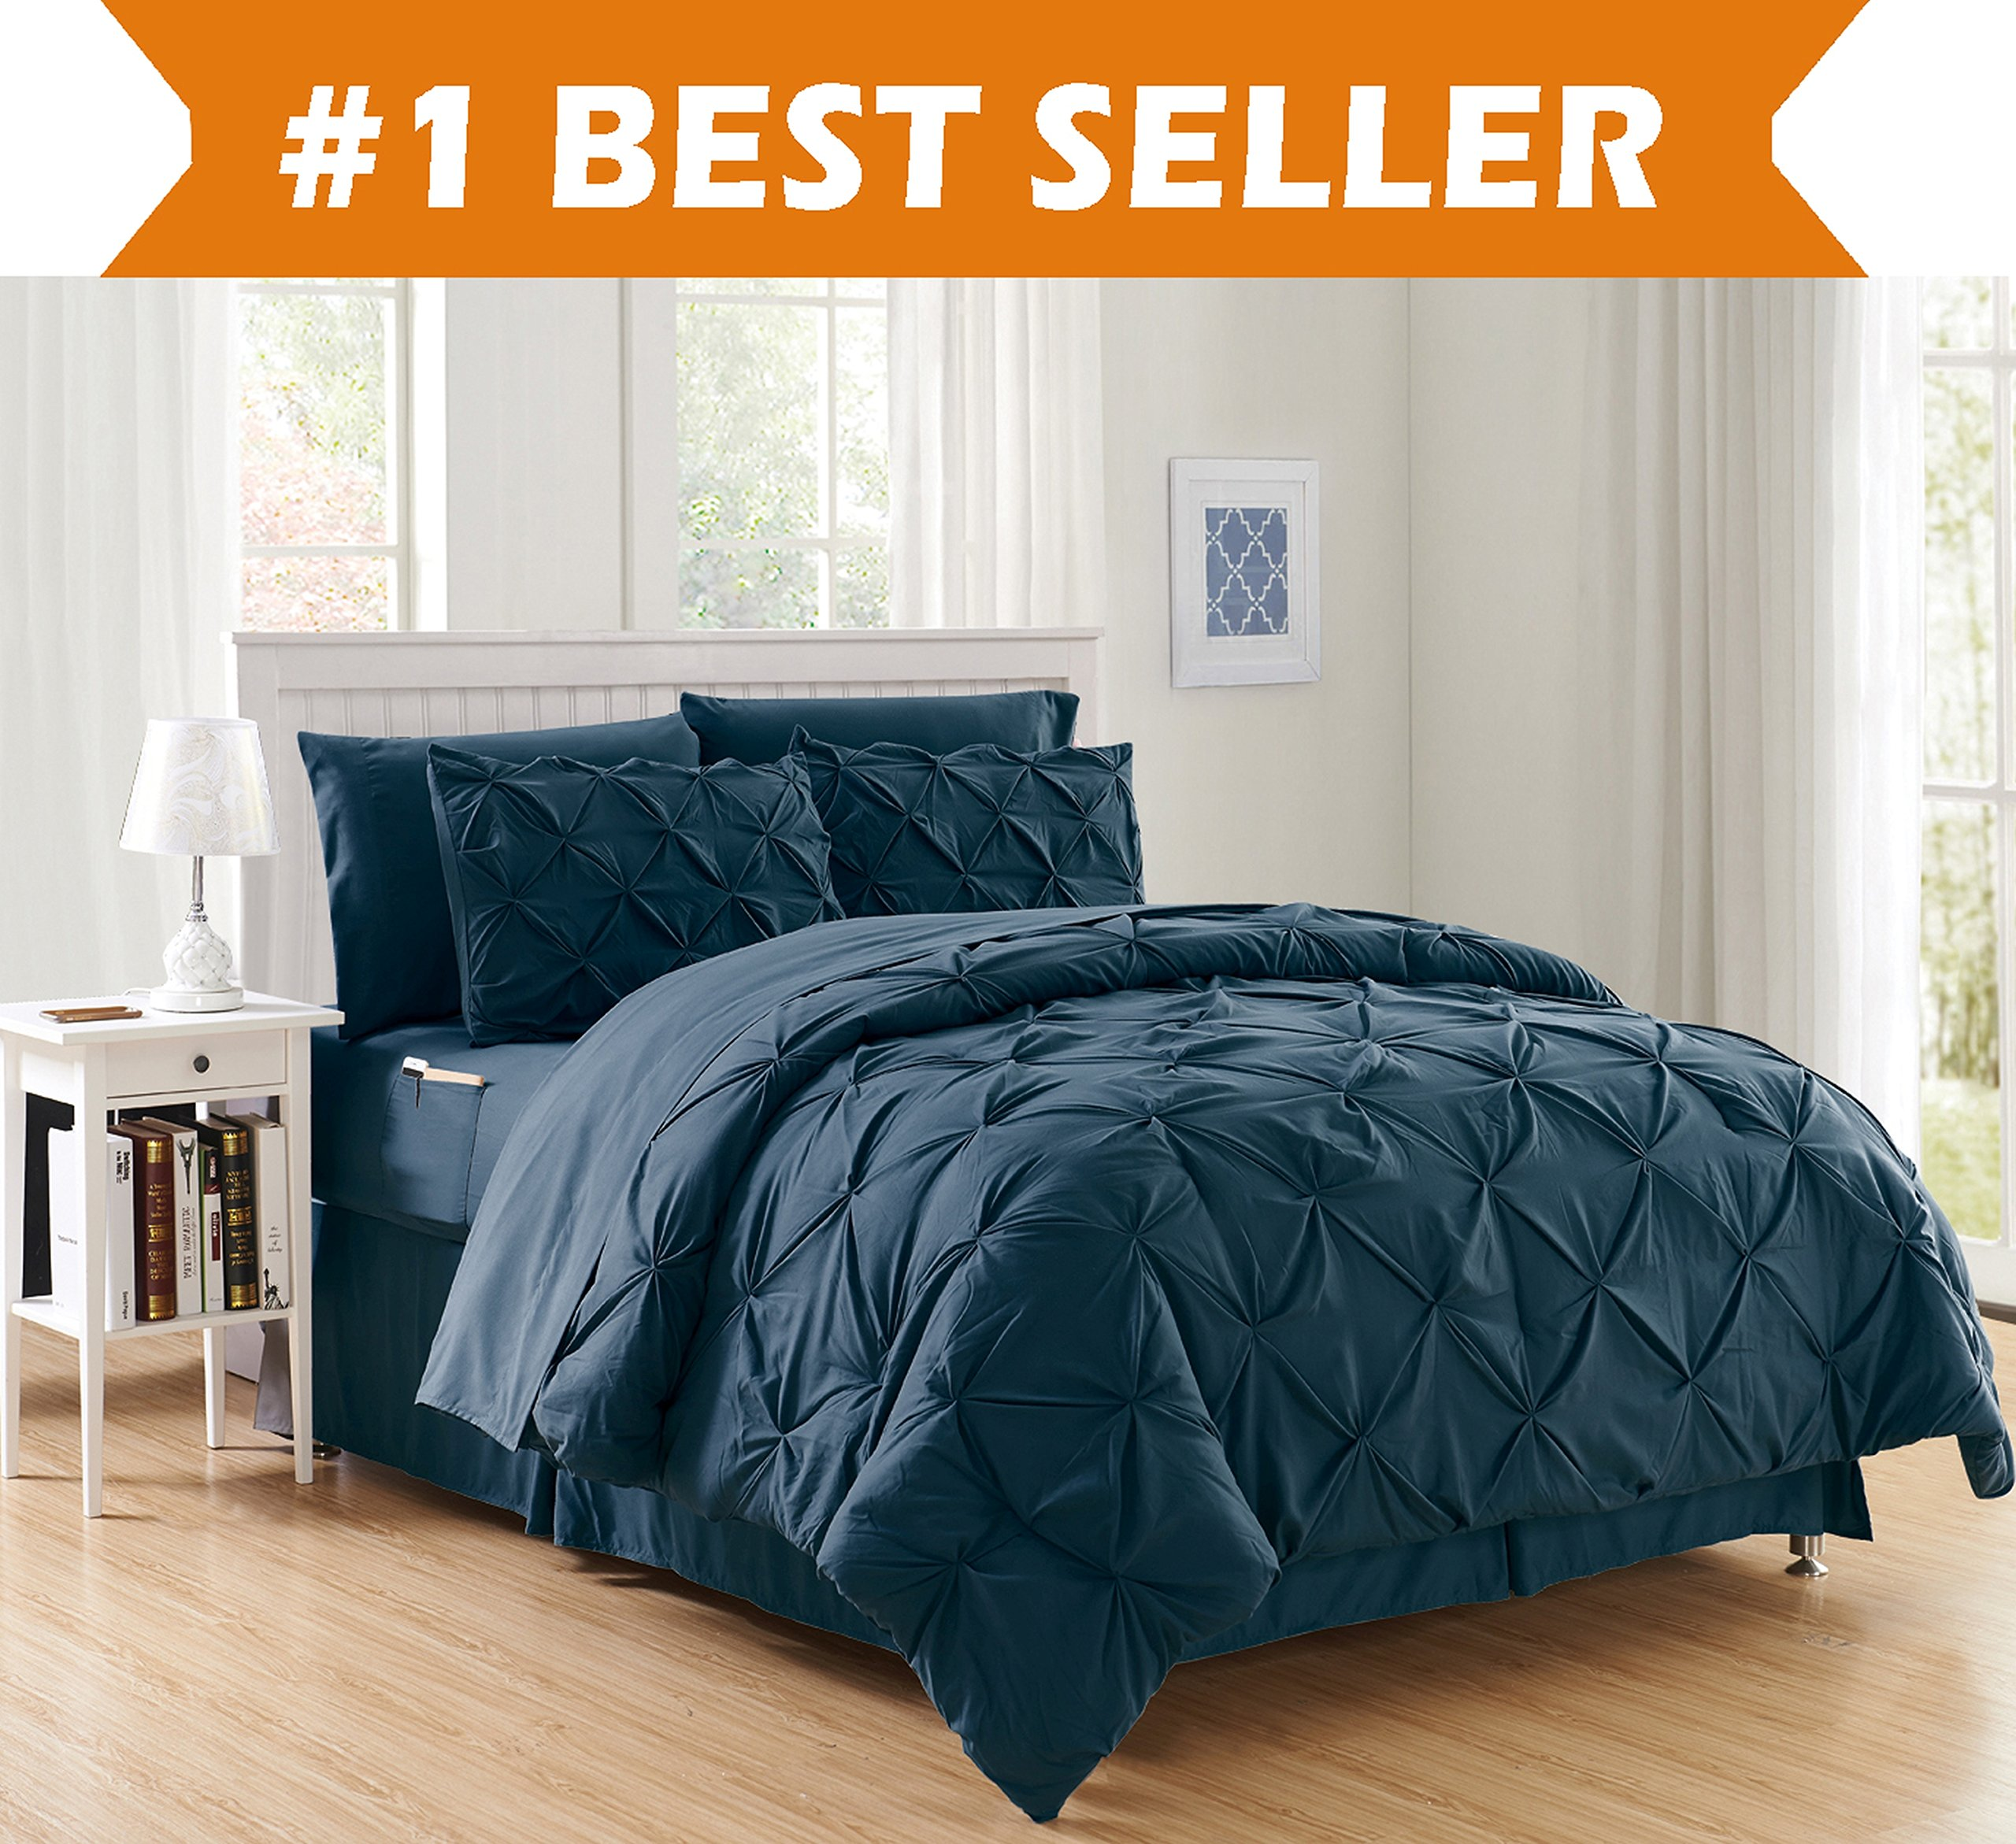 Luxury Best, Softest, Coziest 8-PIECE Bed-in-a-Bag Comforter Set on Amazon! Elegant Comfort - Silky Soft Complete Set Includes Bed Sheet Set with Double Sided Storage Pockets, King/Cal King, Navy